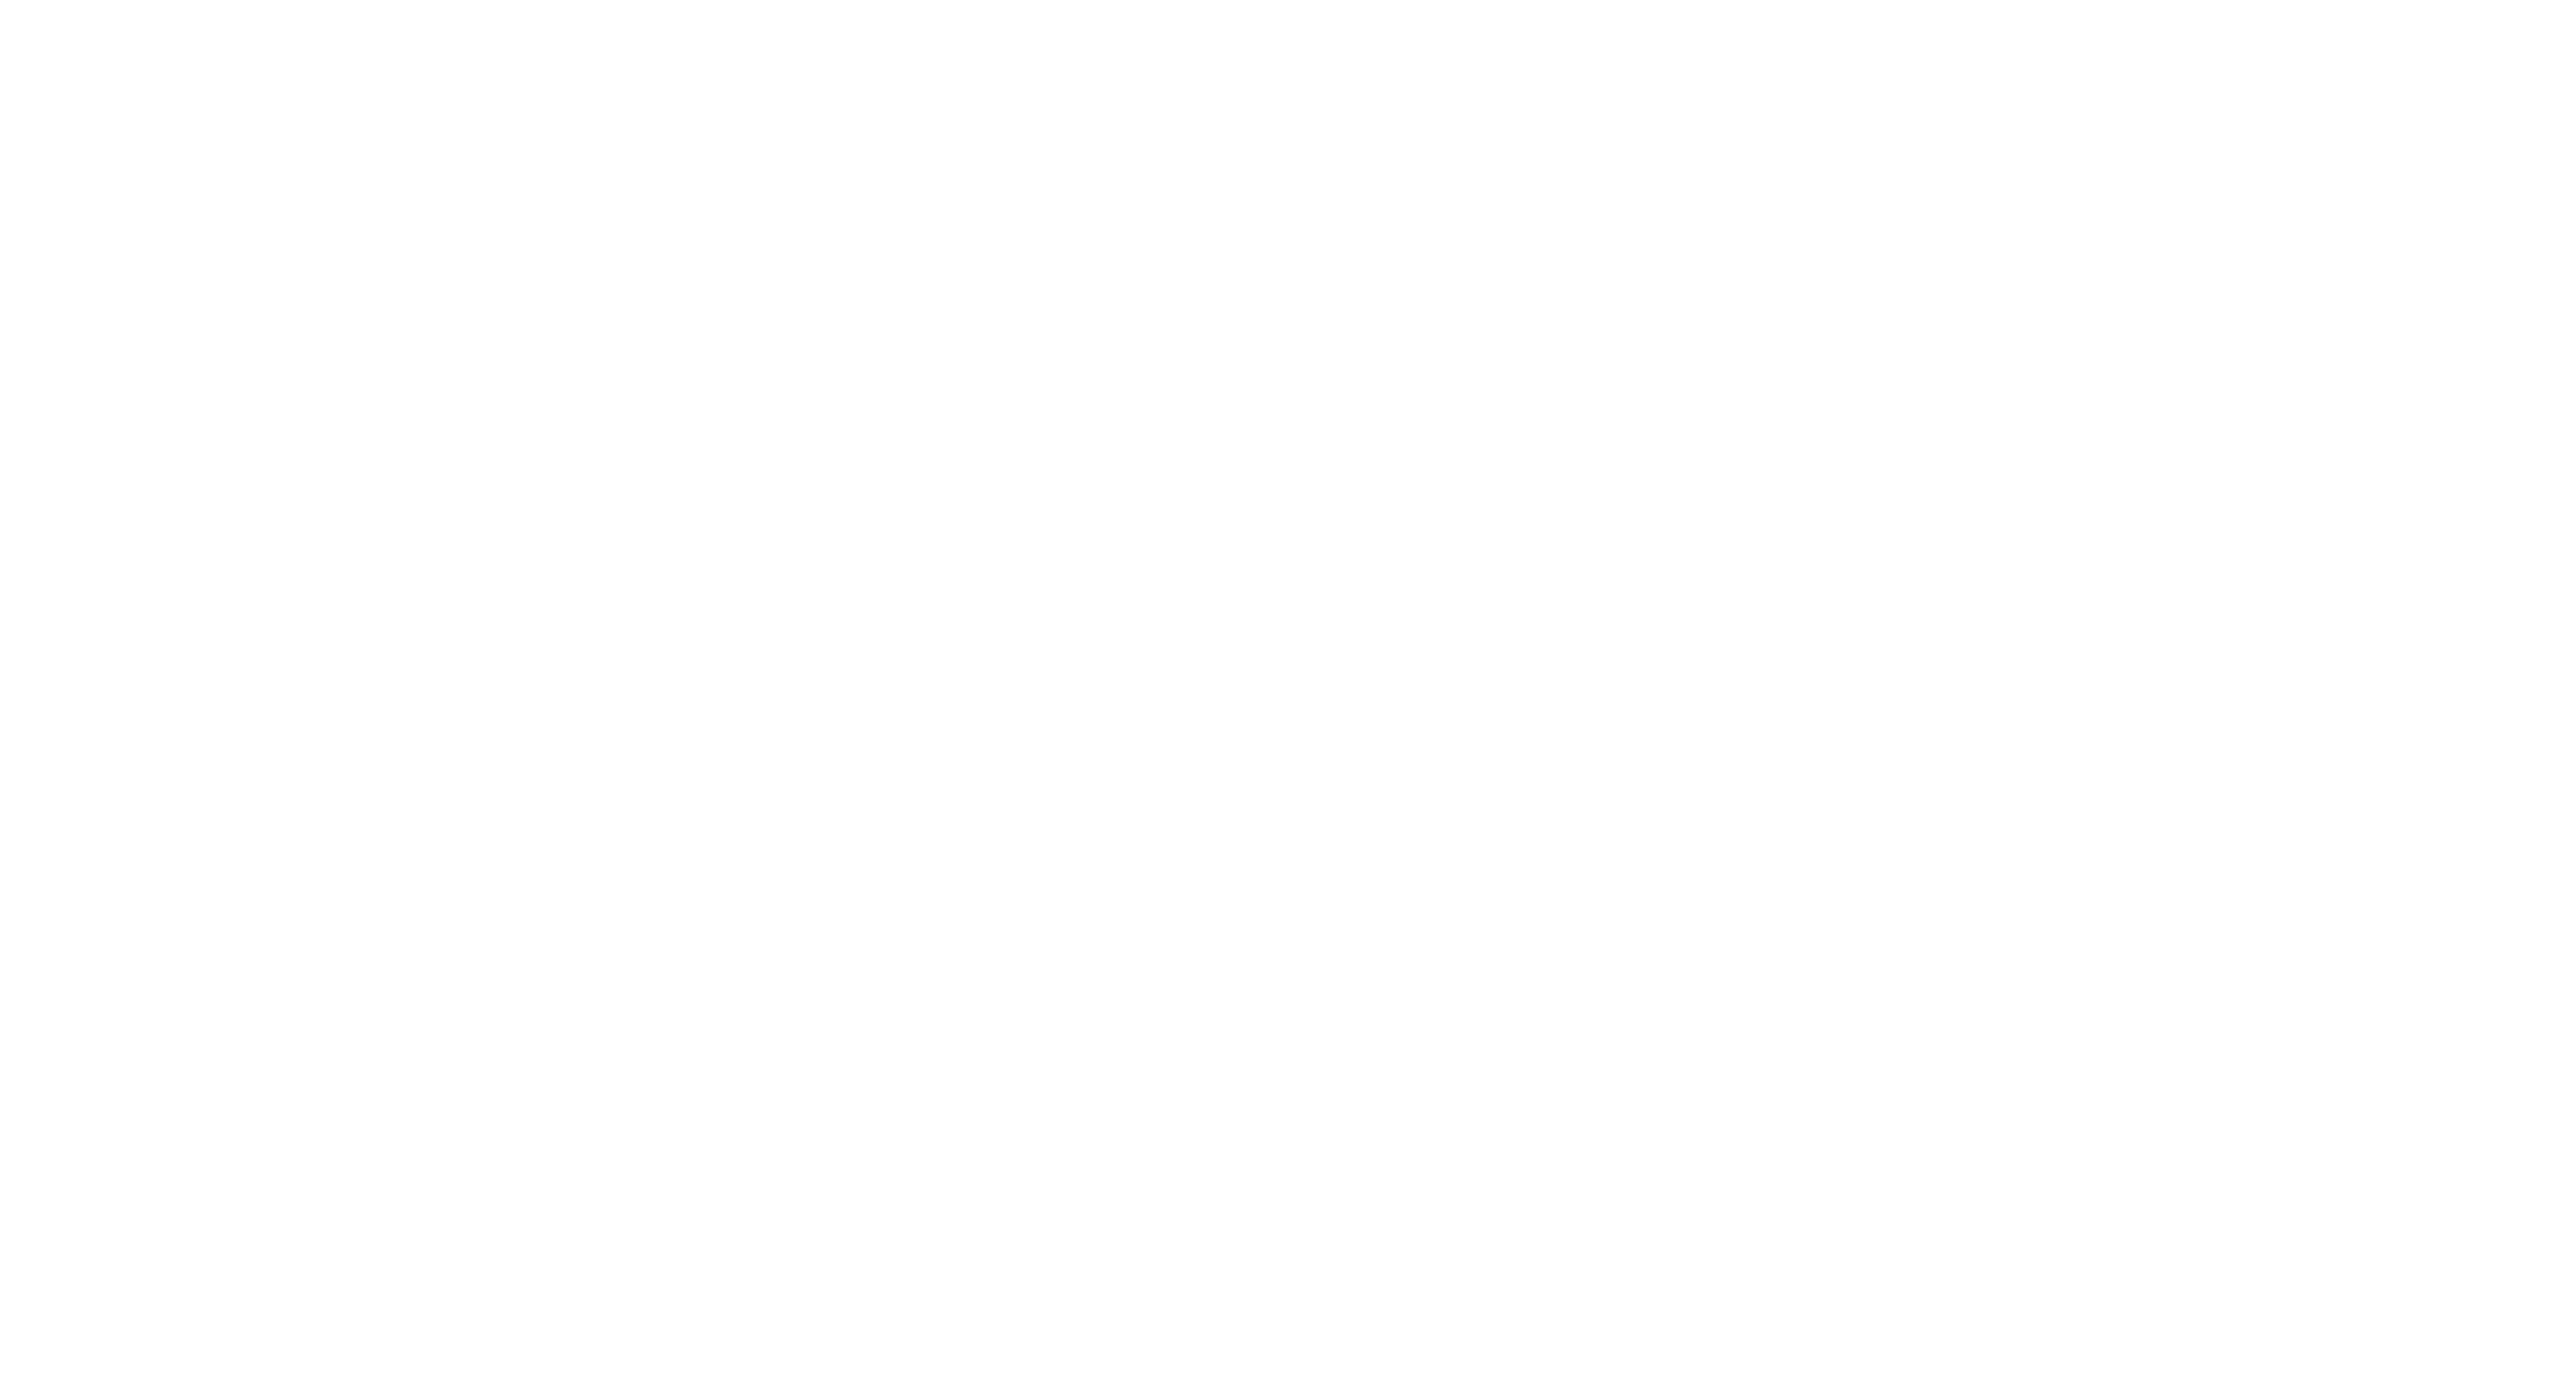 Free smoke cloud png. Image purepng transparent cc